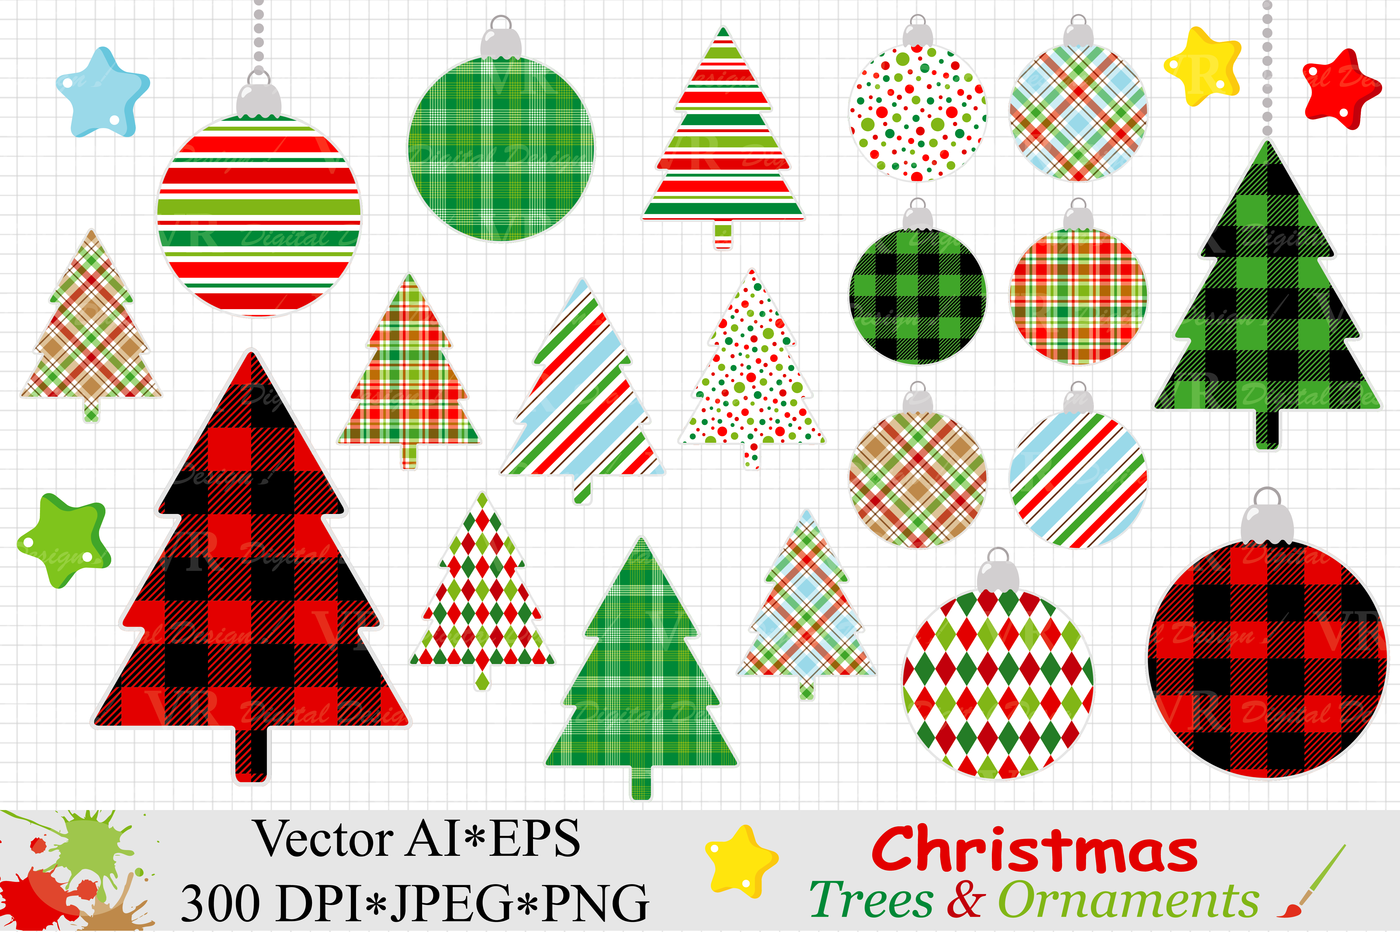 Christmas Trees And Ornaments Clipart Vector By Vr Digital